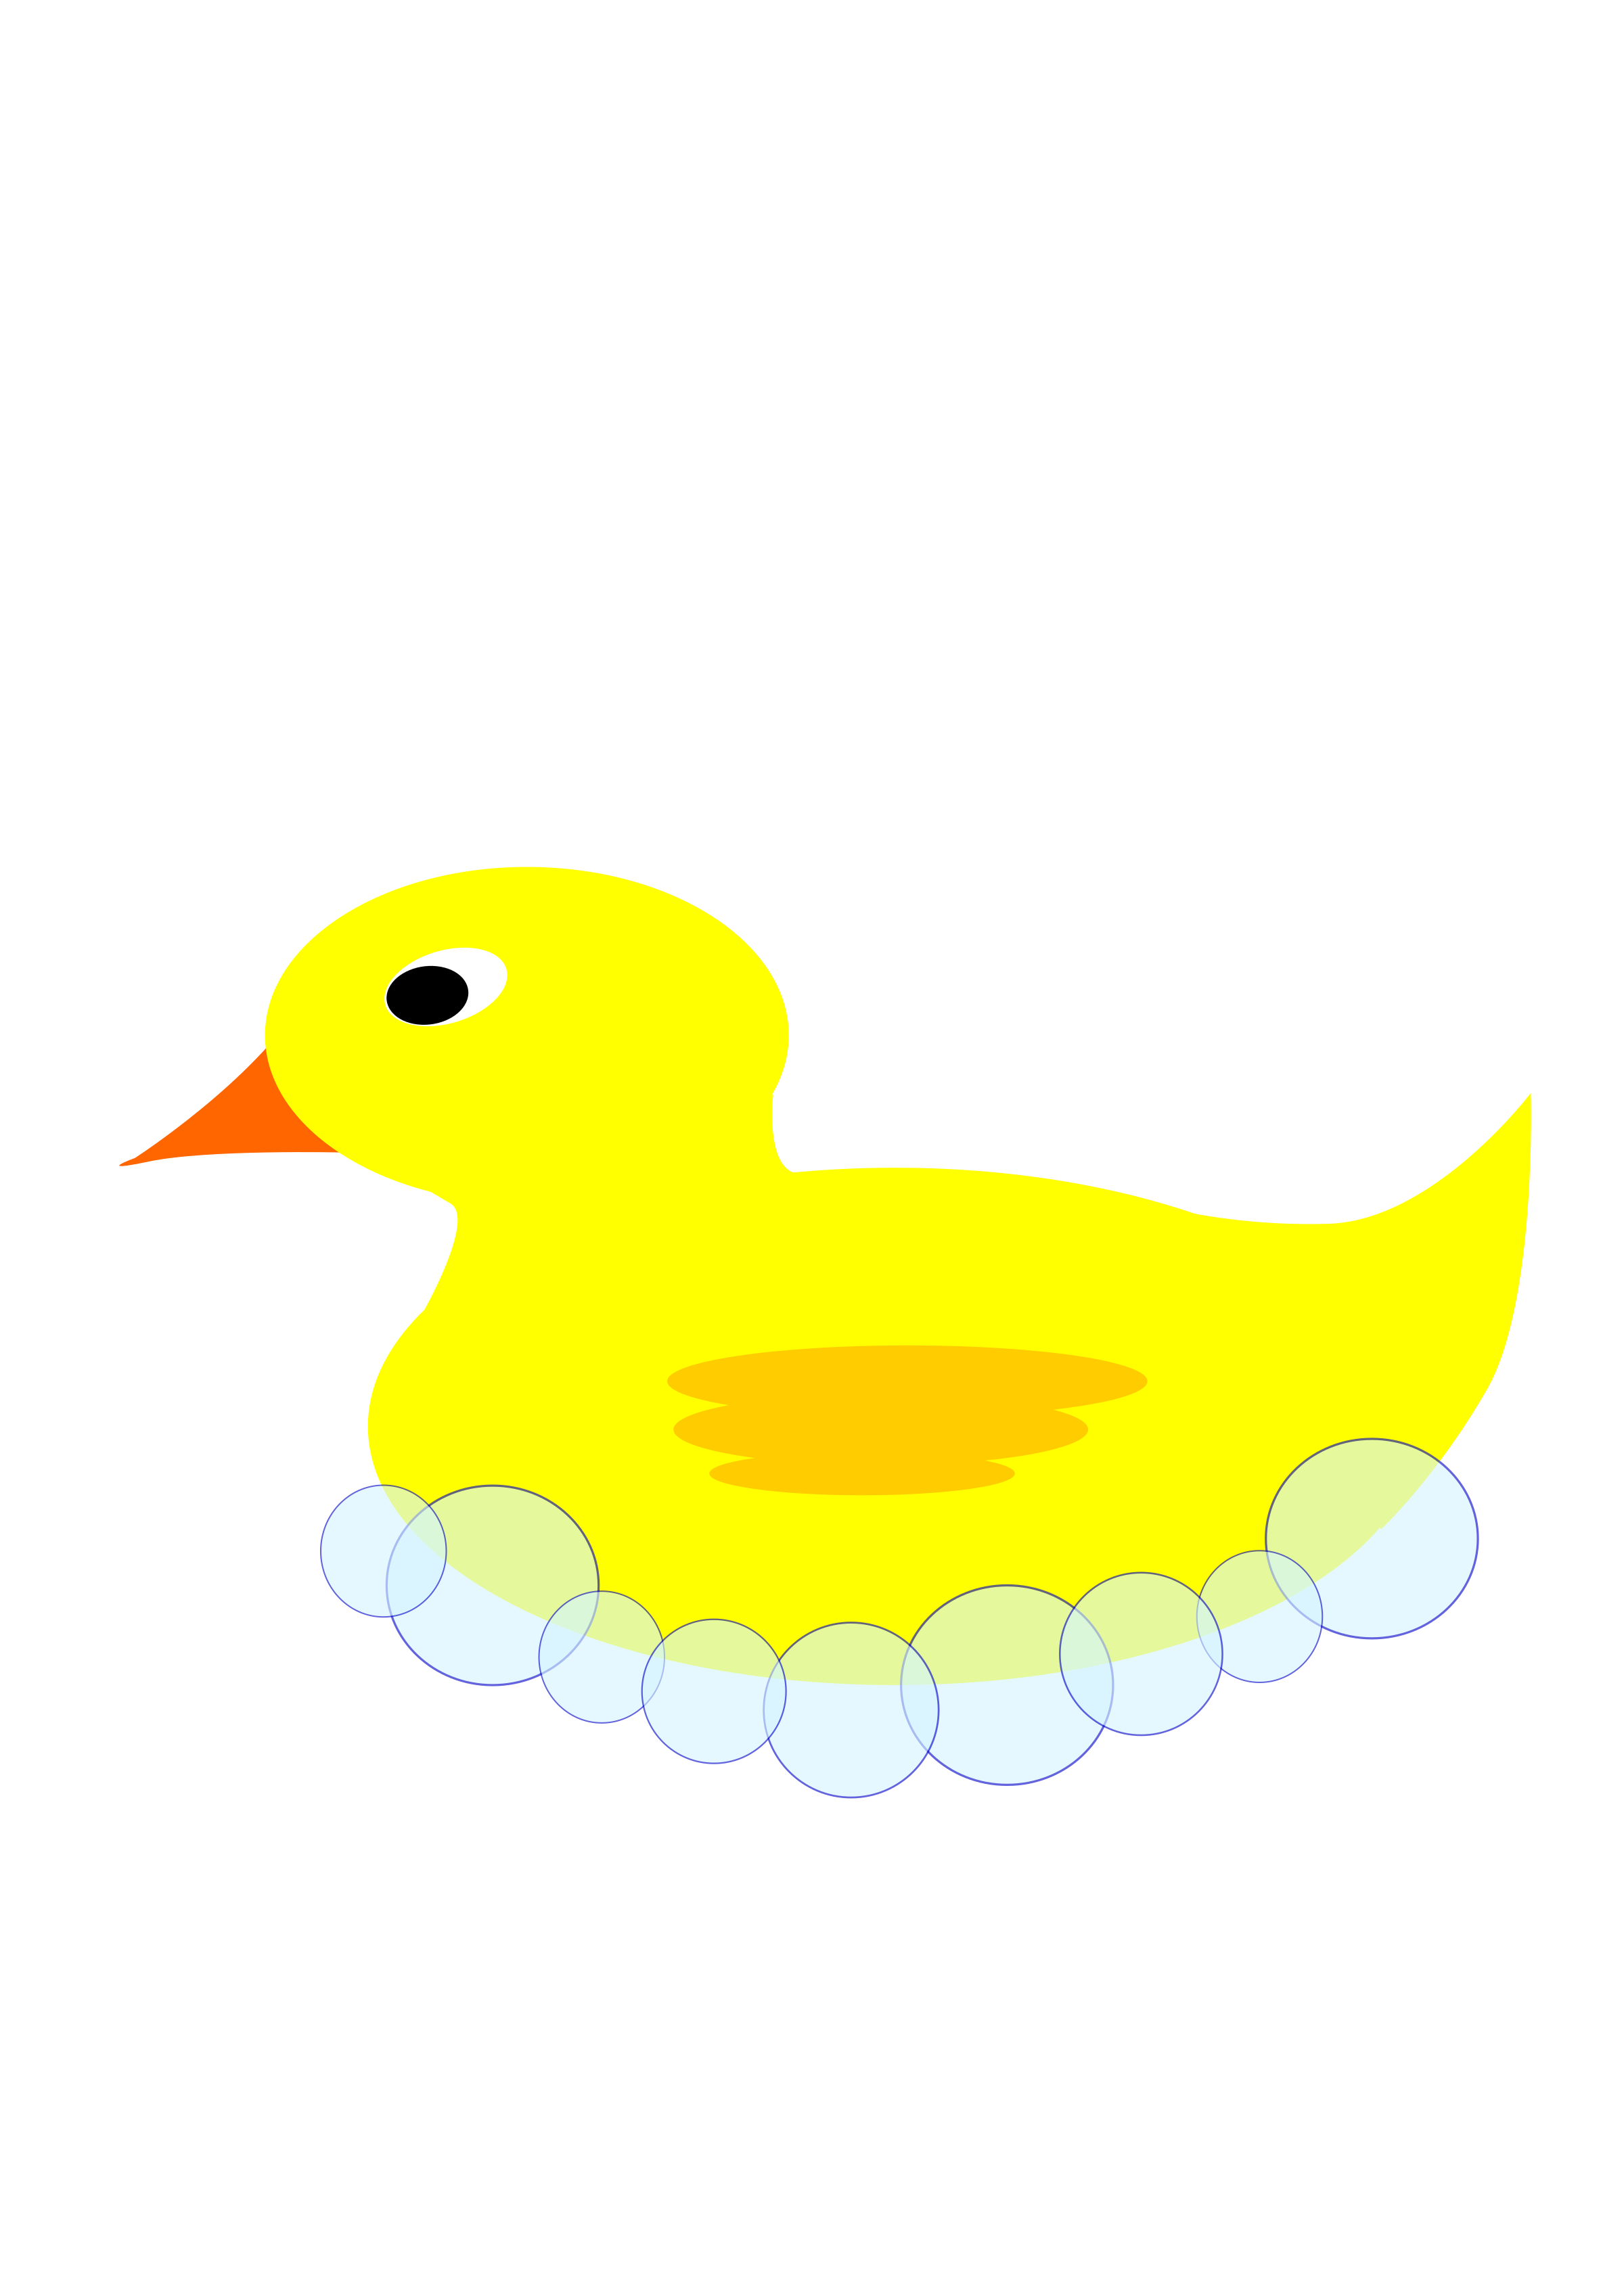 Rubber ducky clipart 3 duck. In bubbles big image